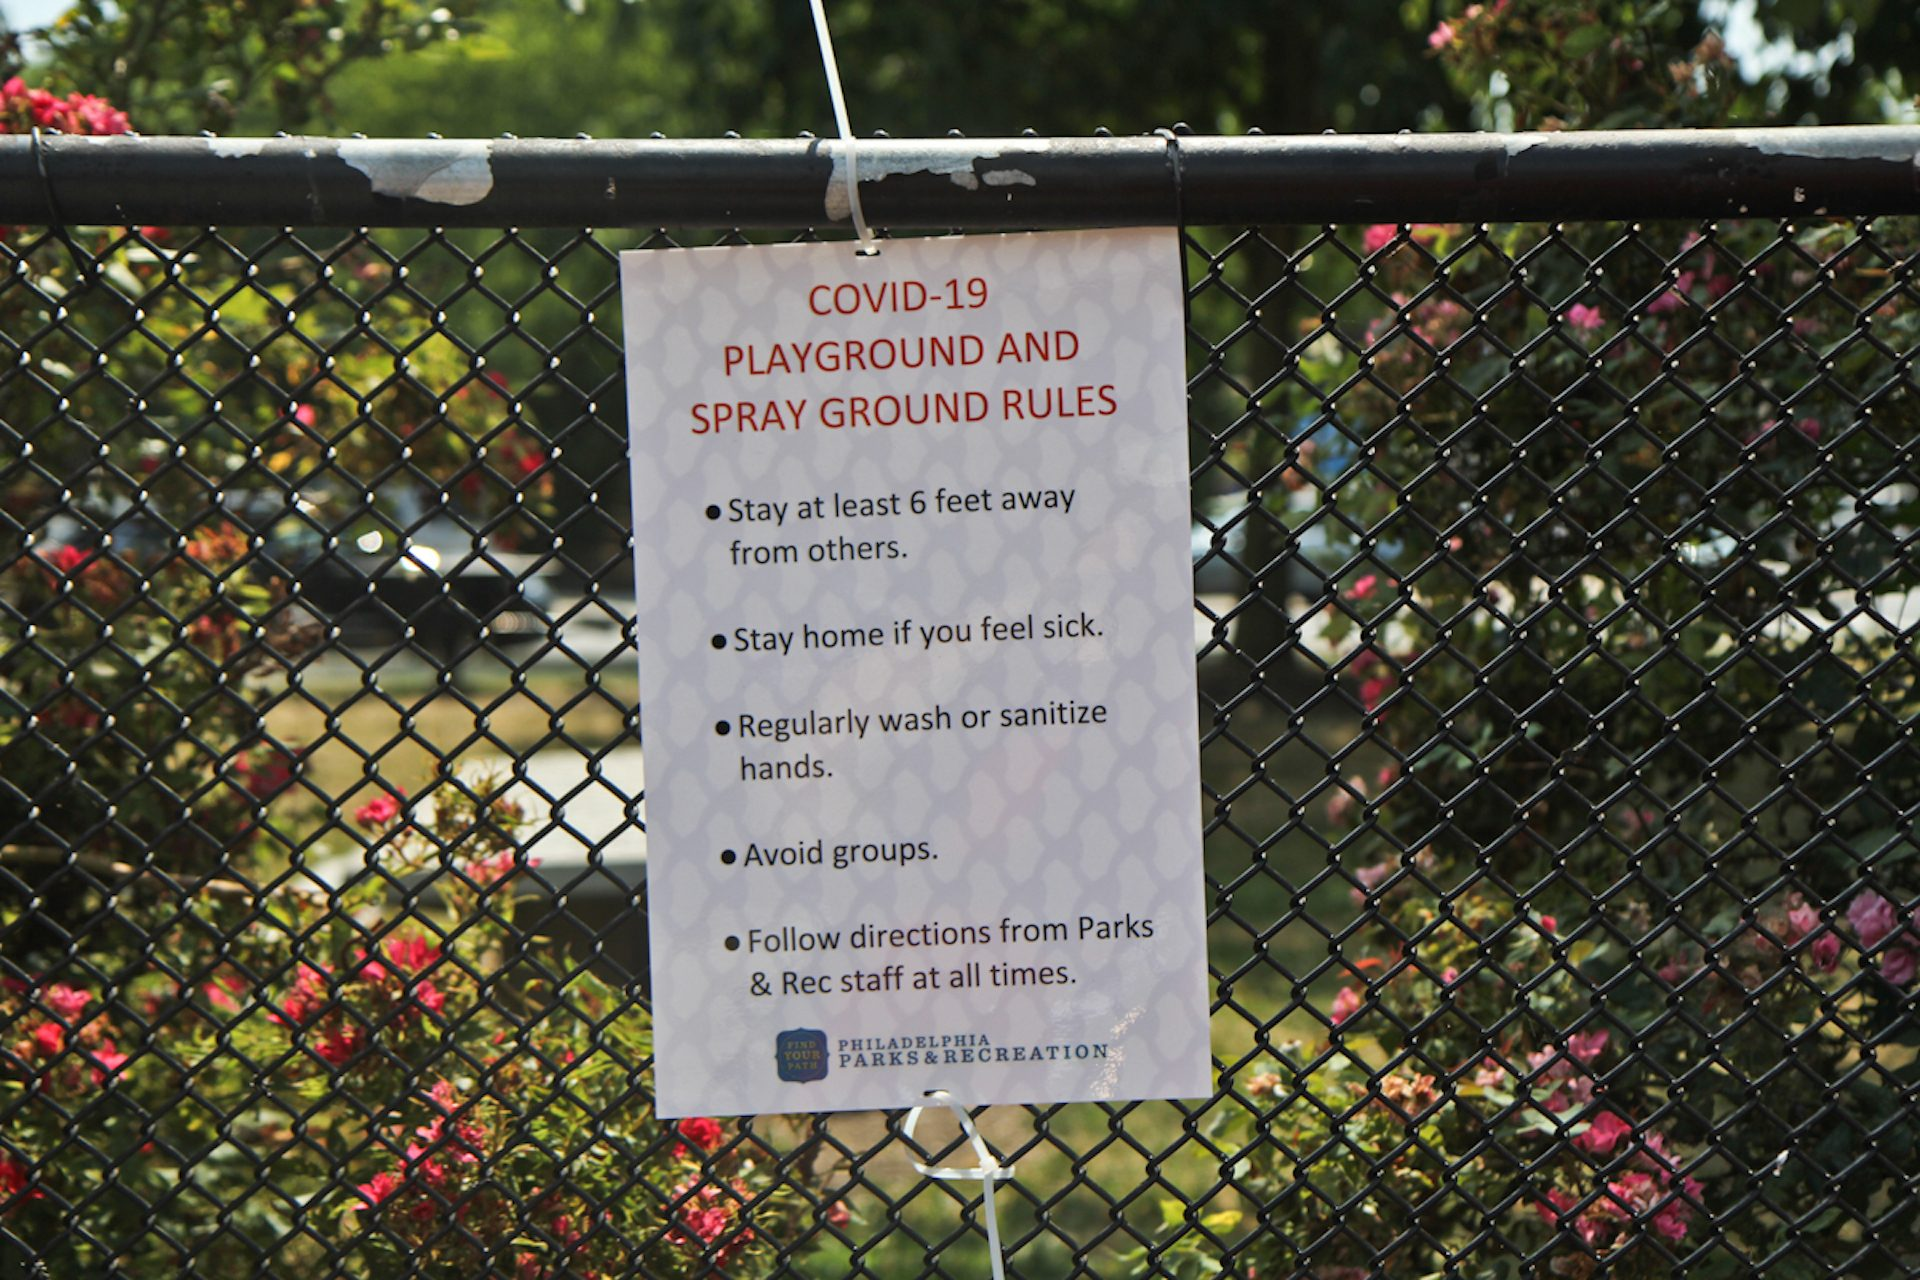 Guidelines to help stop the spread of COVID-19 are posted at Mander Playground in Philadelphia.